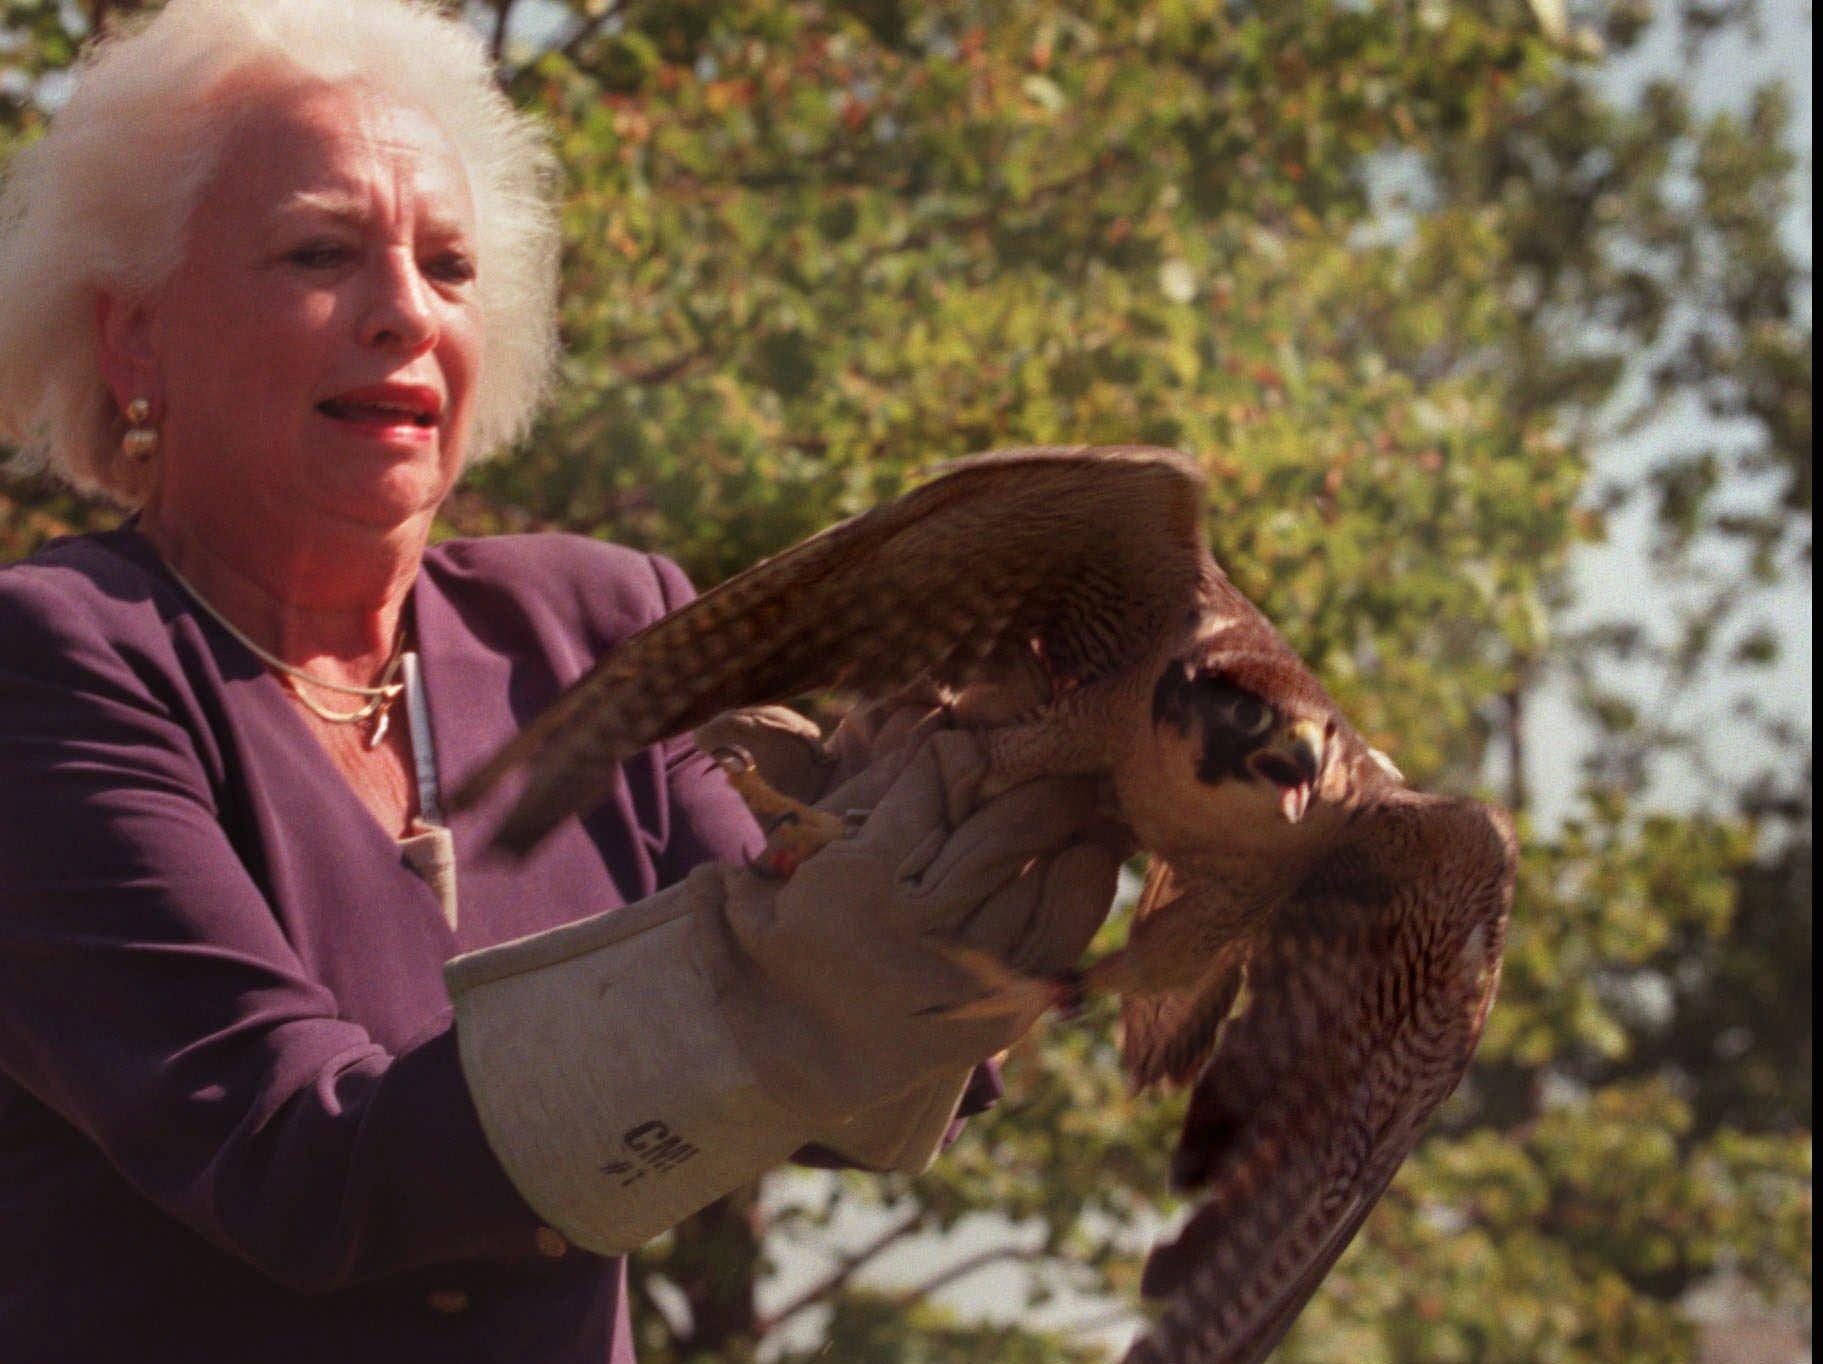 U.S. Treasurer Mary Ellen Withrow releases a peregrine to coincide with the removal of the bird from the endangered species list Tuesday Aug. 25, 1998 in Minneapolis, Minn. Withrow released Harriet, who produced at least a dozen offspring after finding a mate in Chicago. Harriet was found with a broken wing in January and has been healing at the Raptor center.